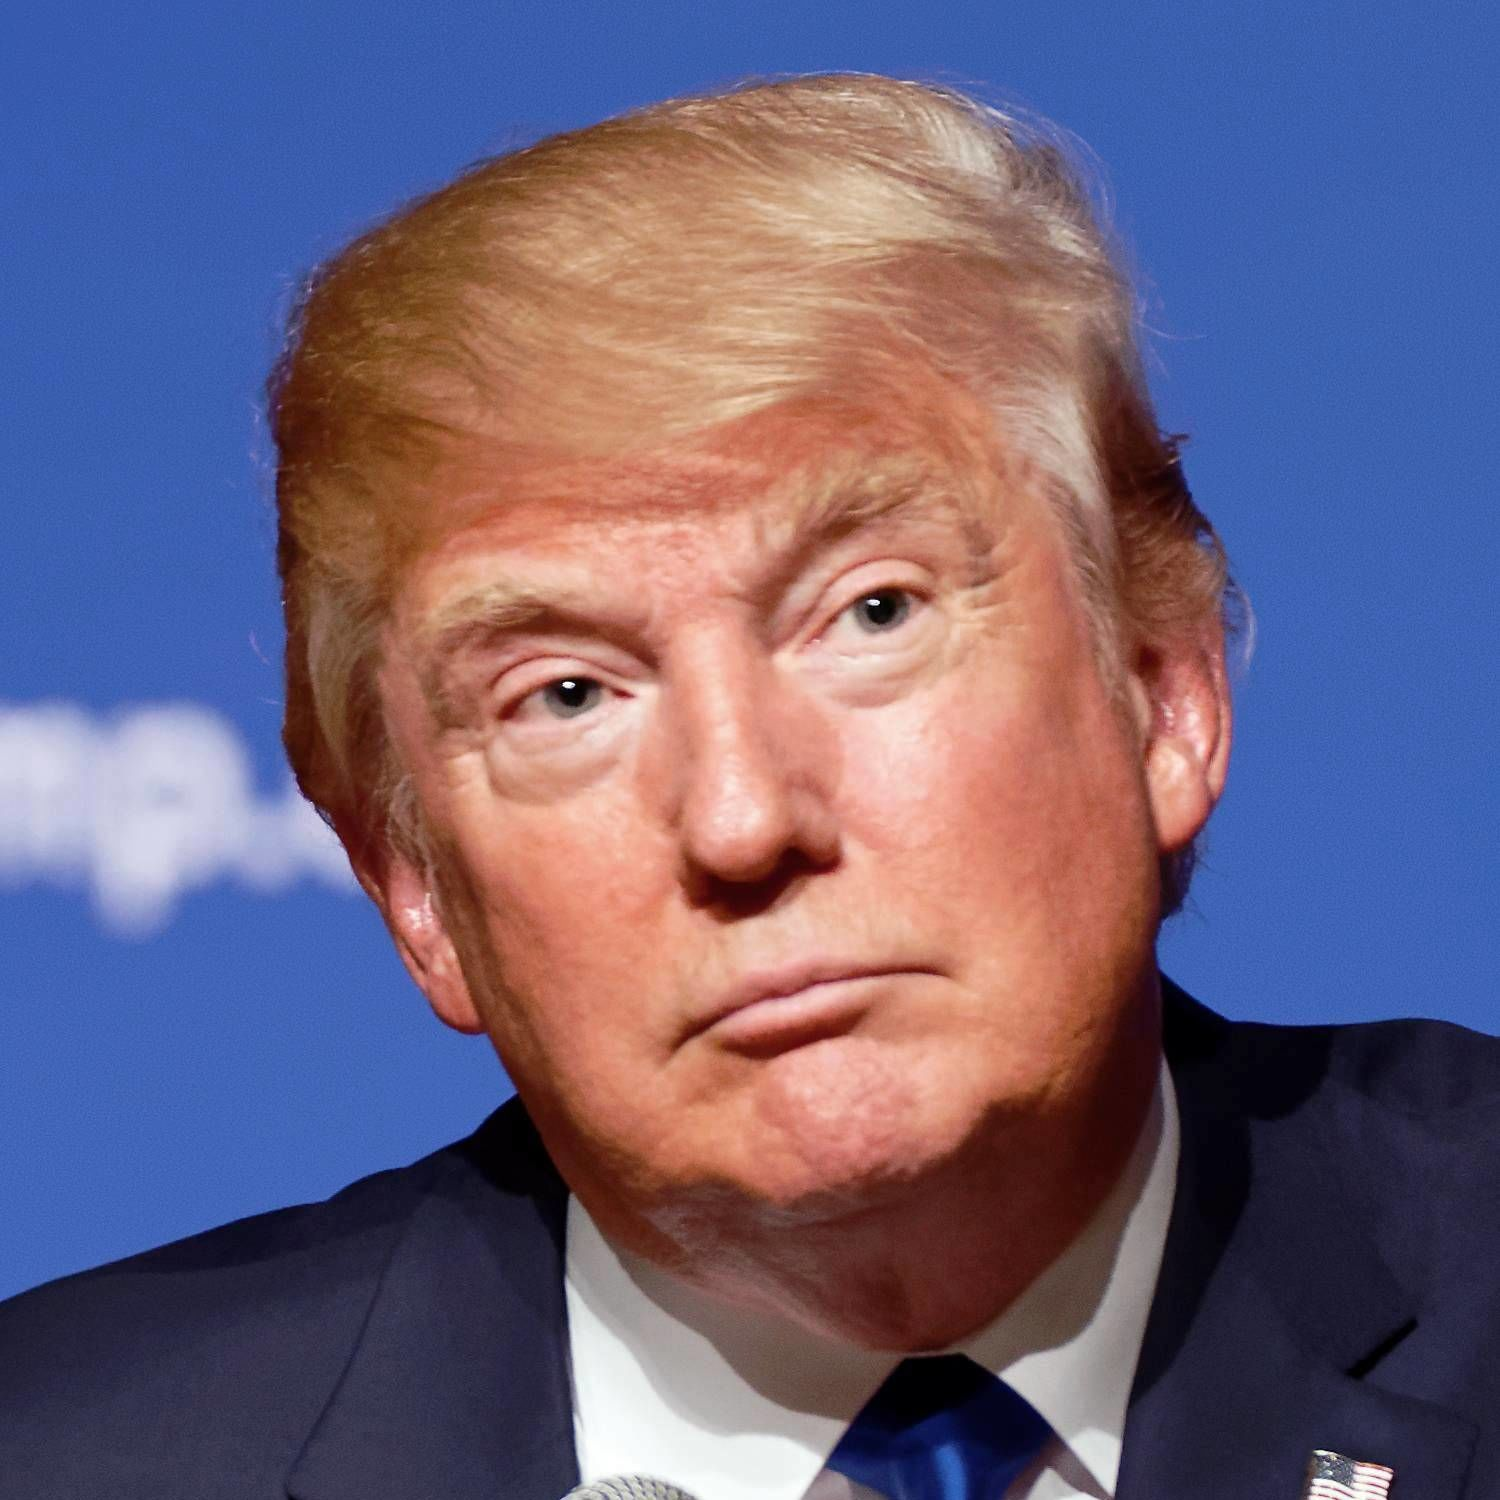 Donald trump august 19  2015  cropped  zxujpf